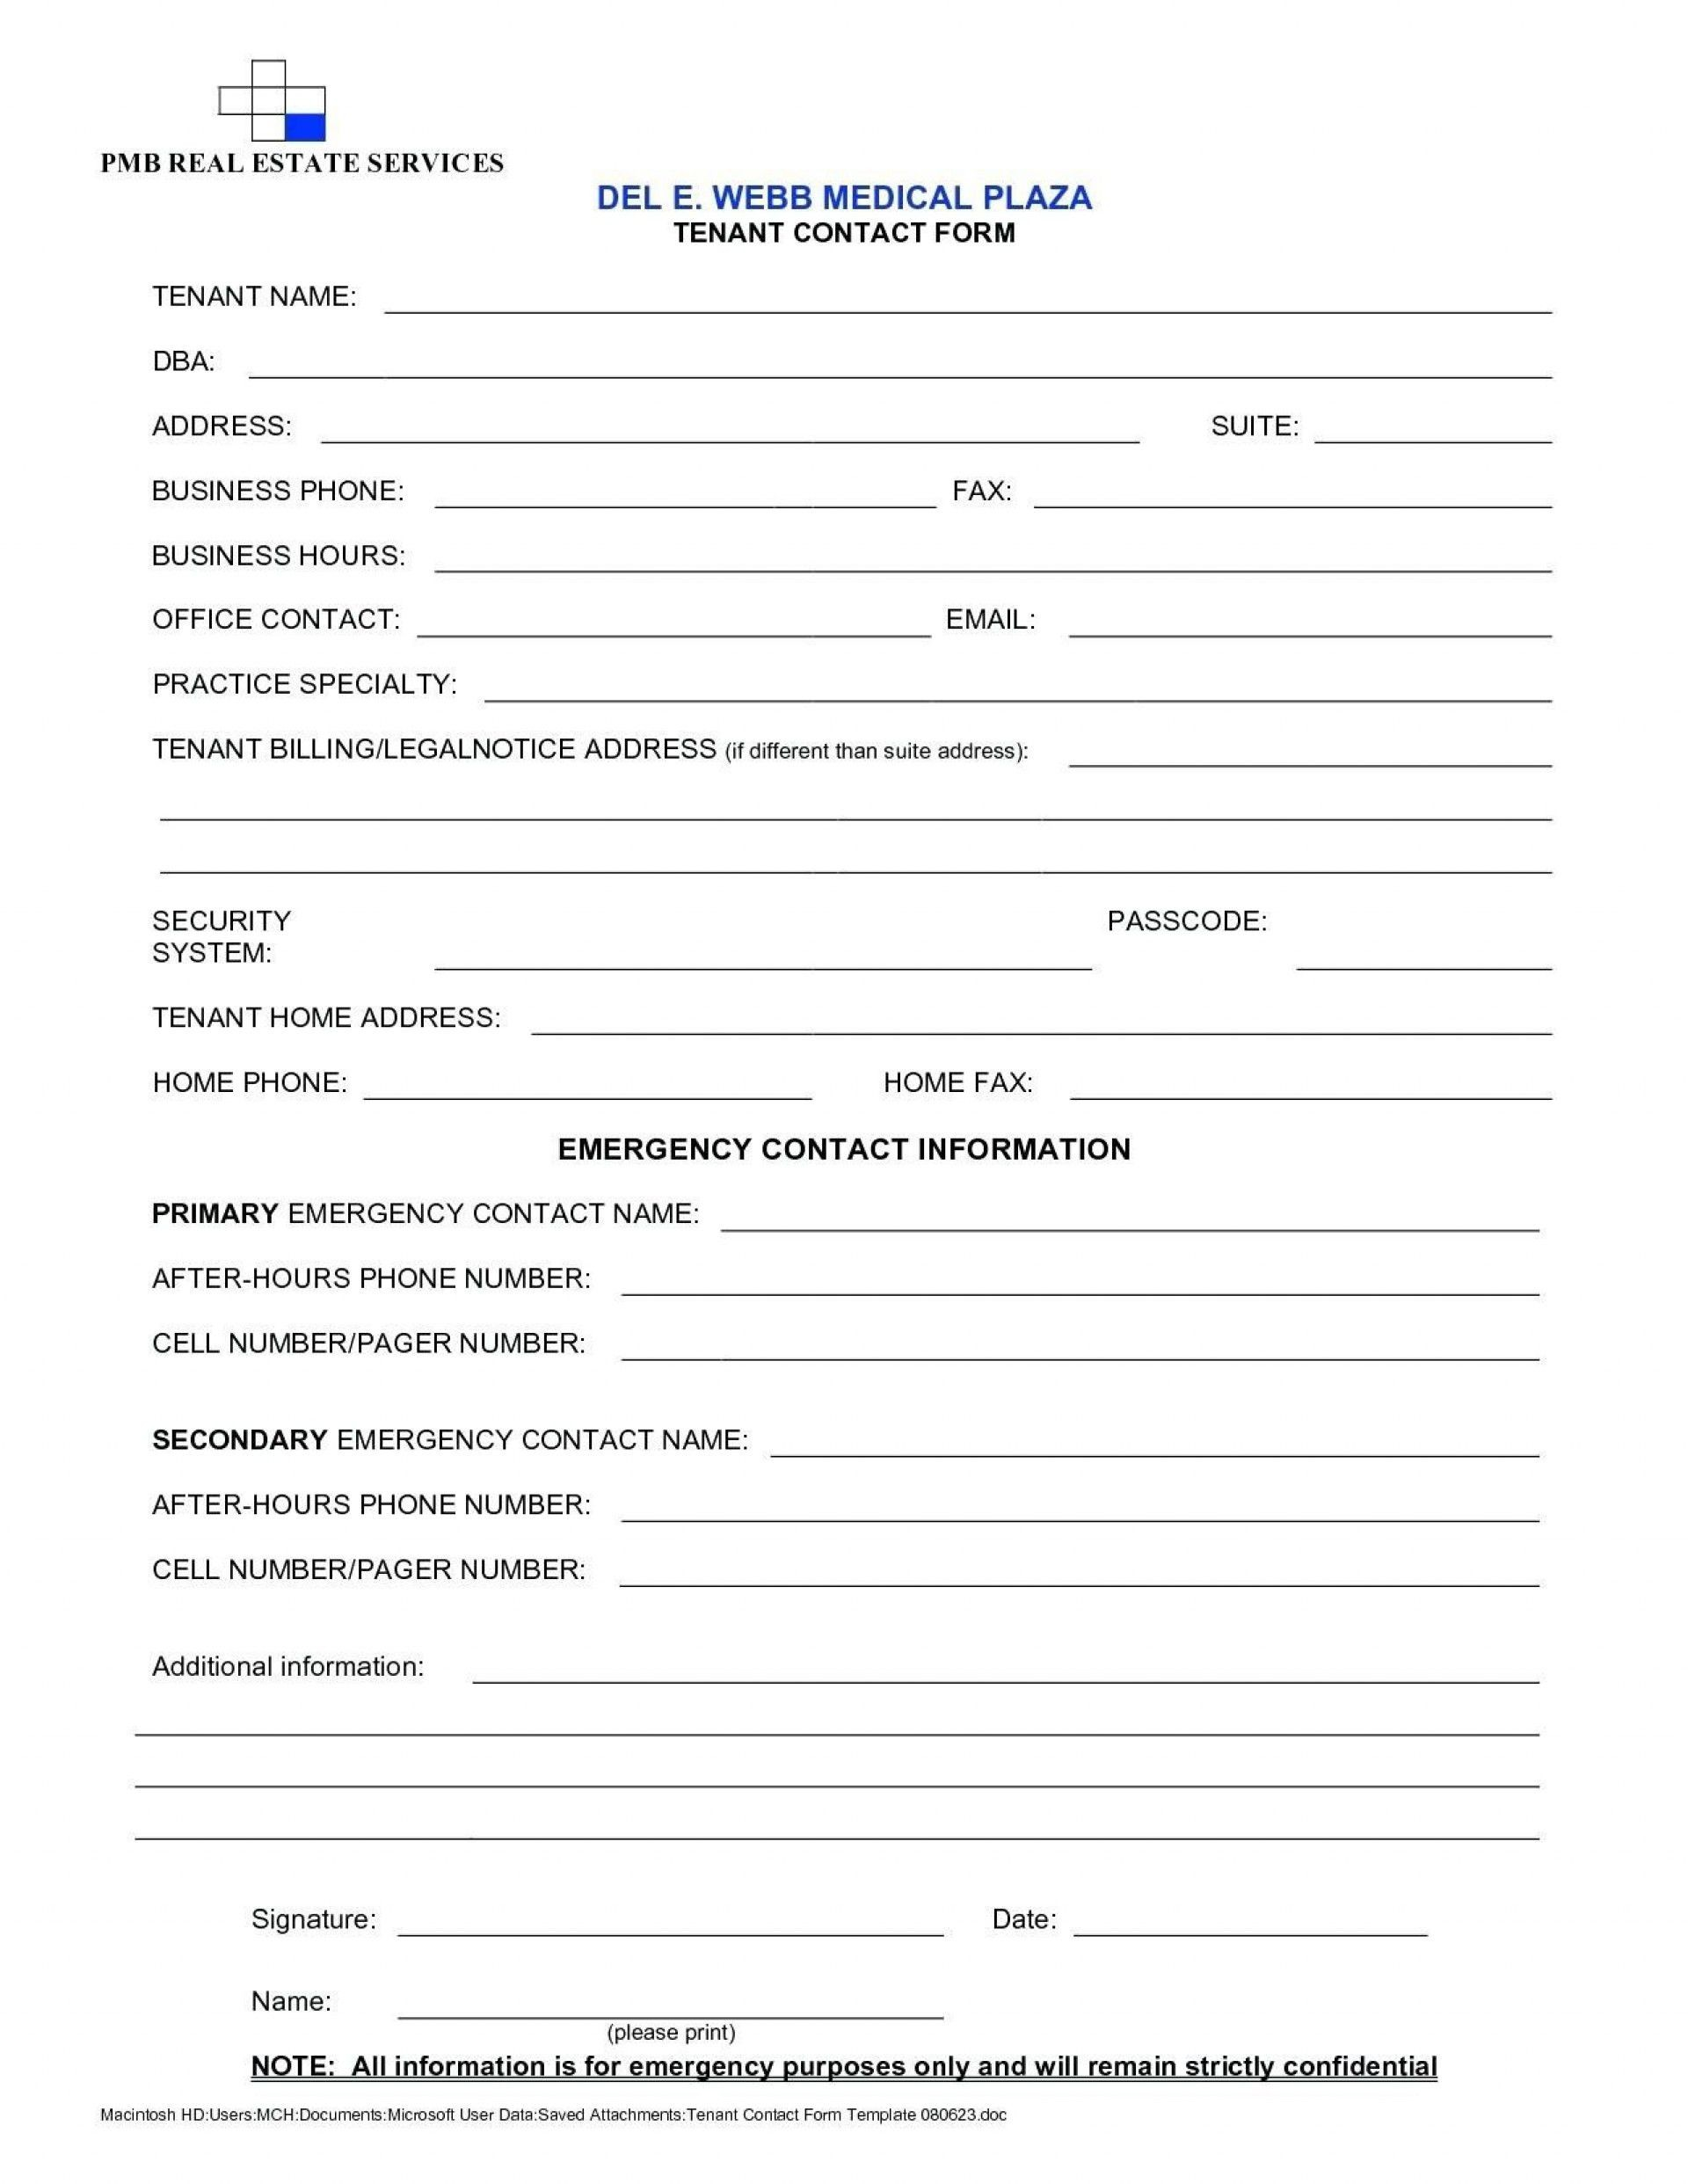 001 Awful New Customer Form Template Word Highest Quality  Registration Account Feedback1920